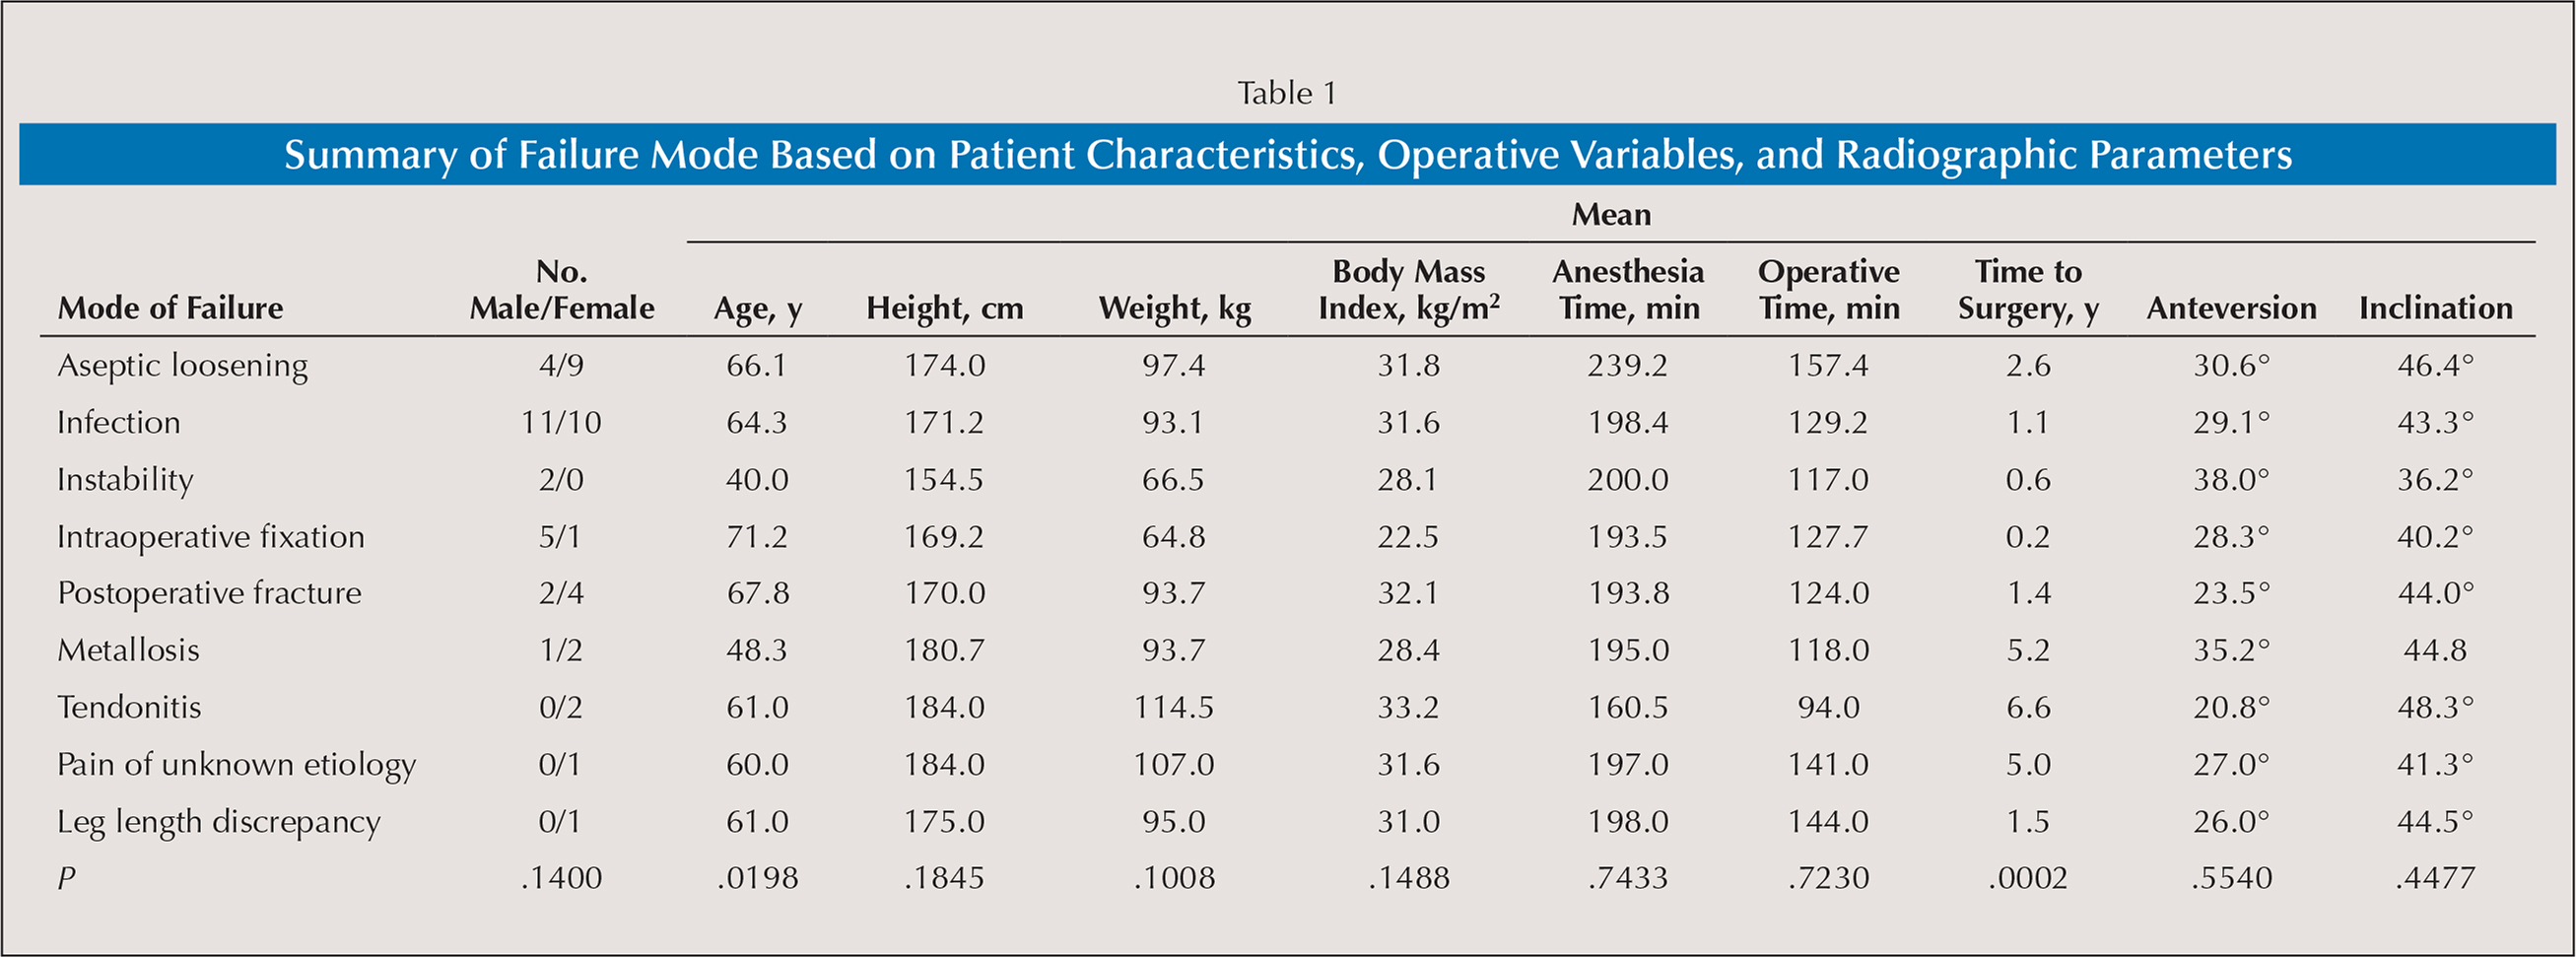 Summary of Failure Mode Based on Patient Characteristics, Operative Variables, and Radiographic Parameters